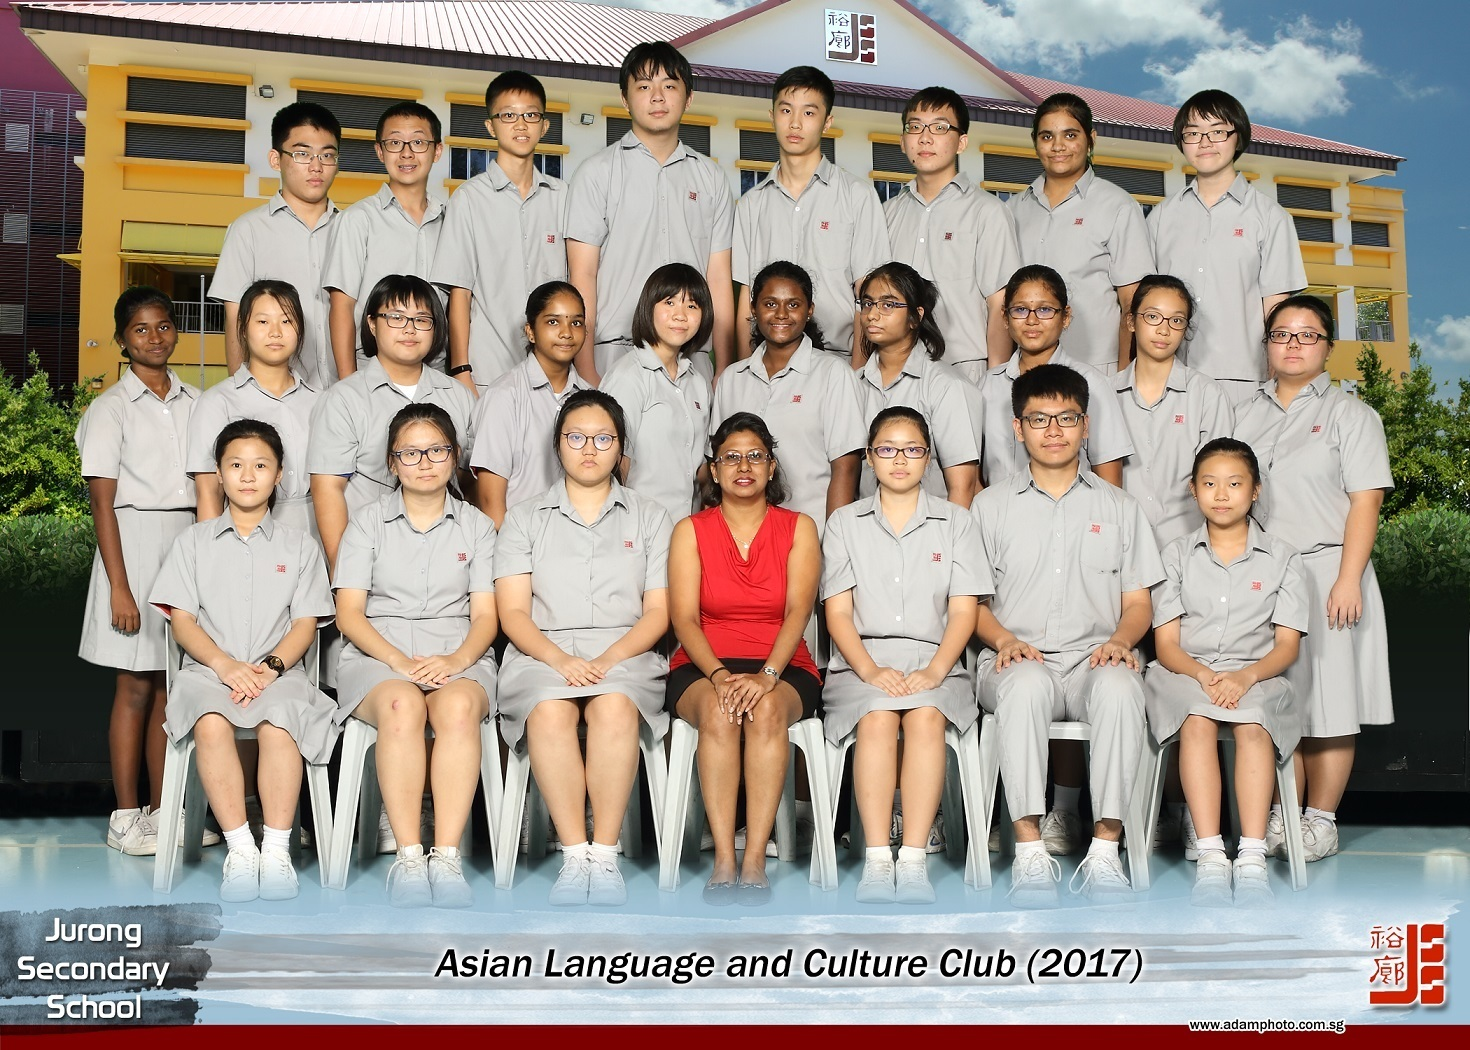 asian language and culture club 2.jpg